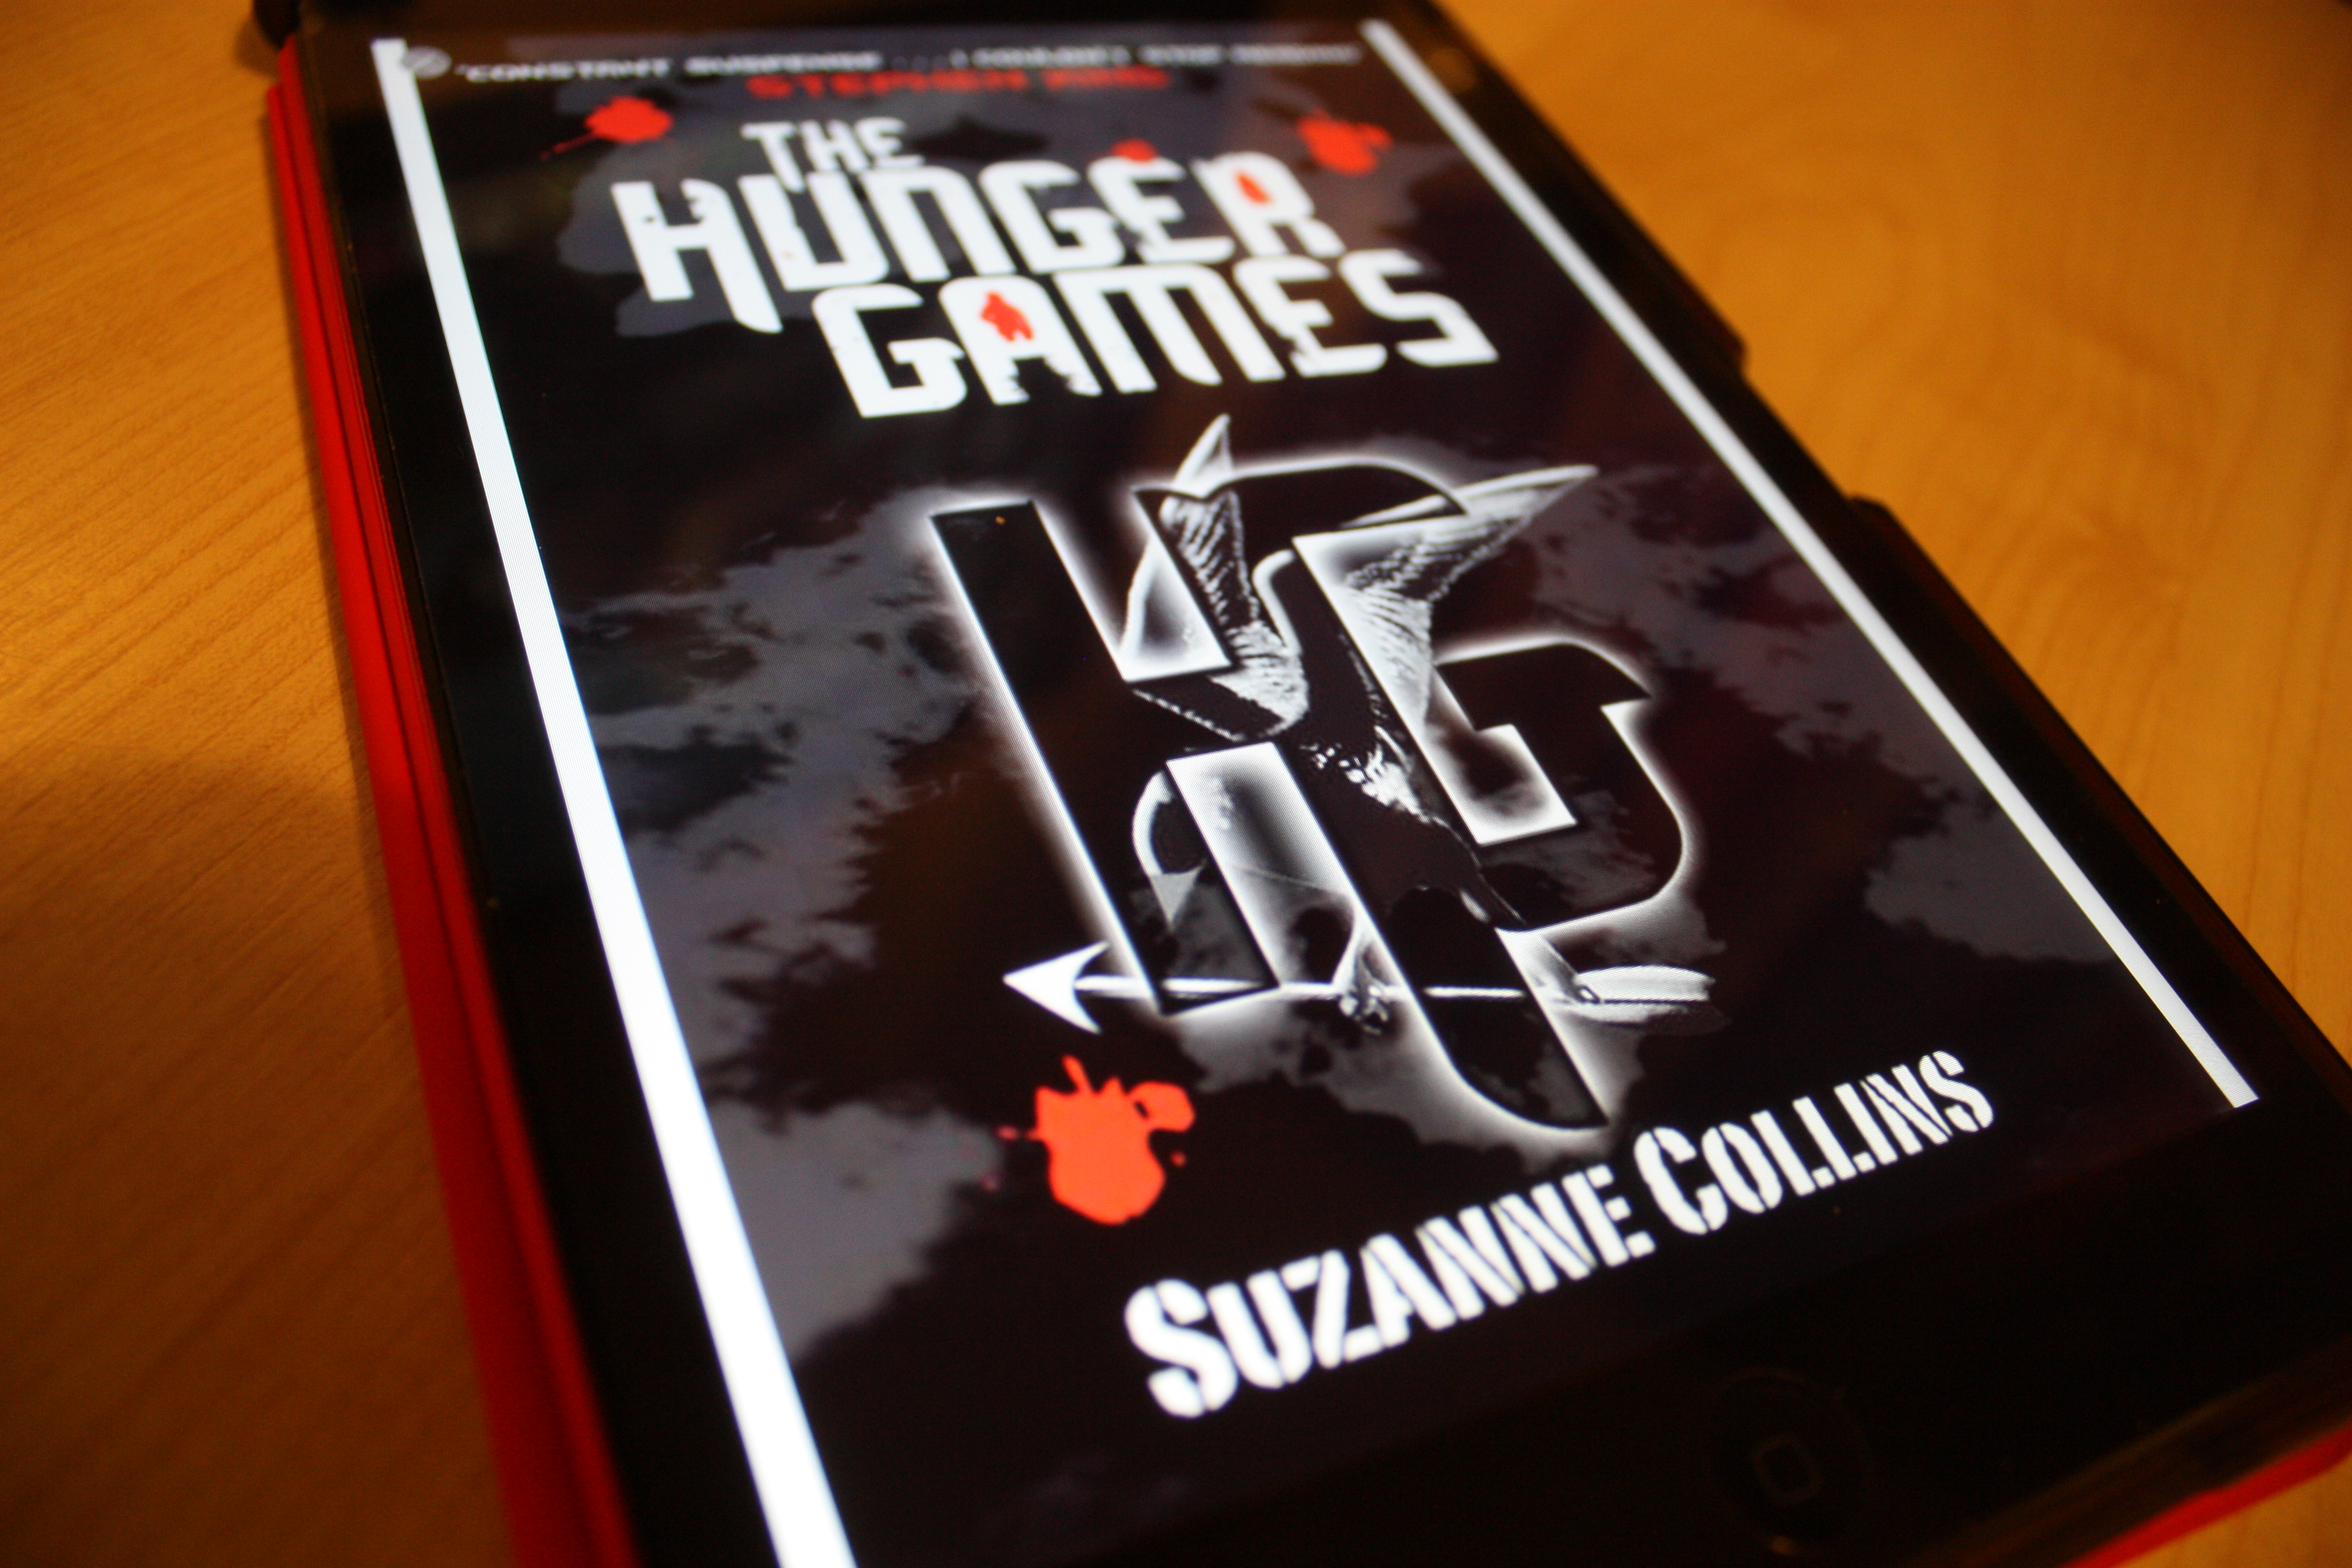 The Hunger Games #1 by Suzanne Collins